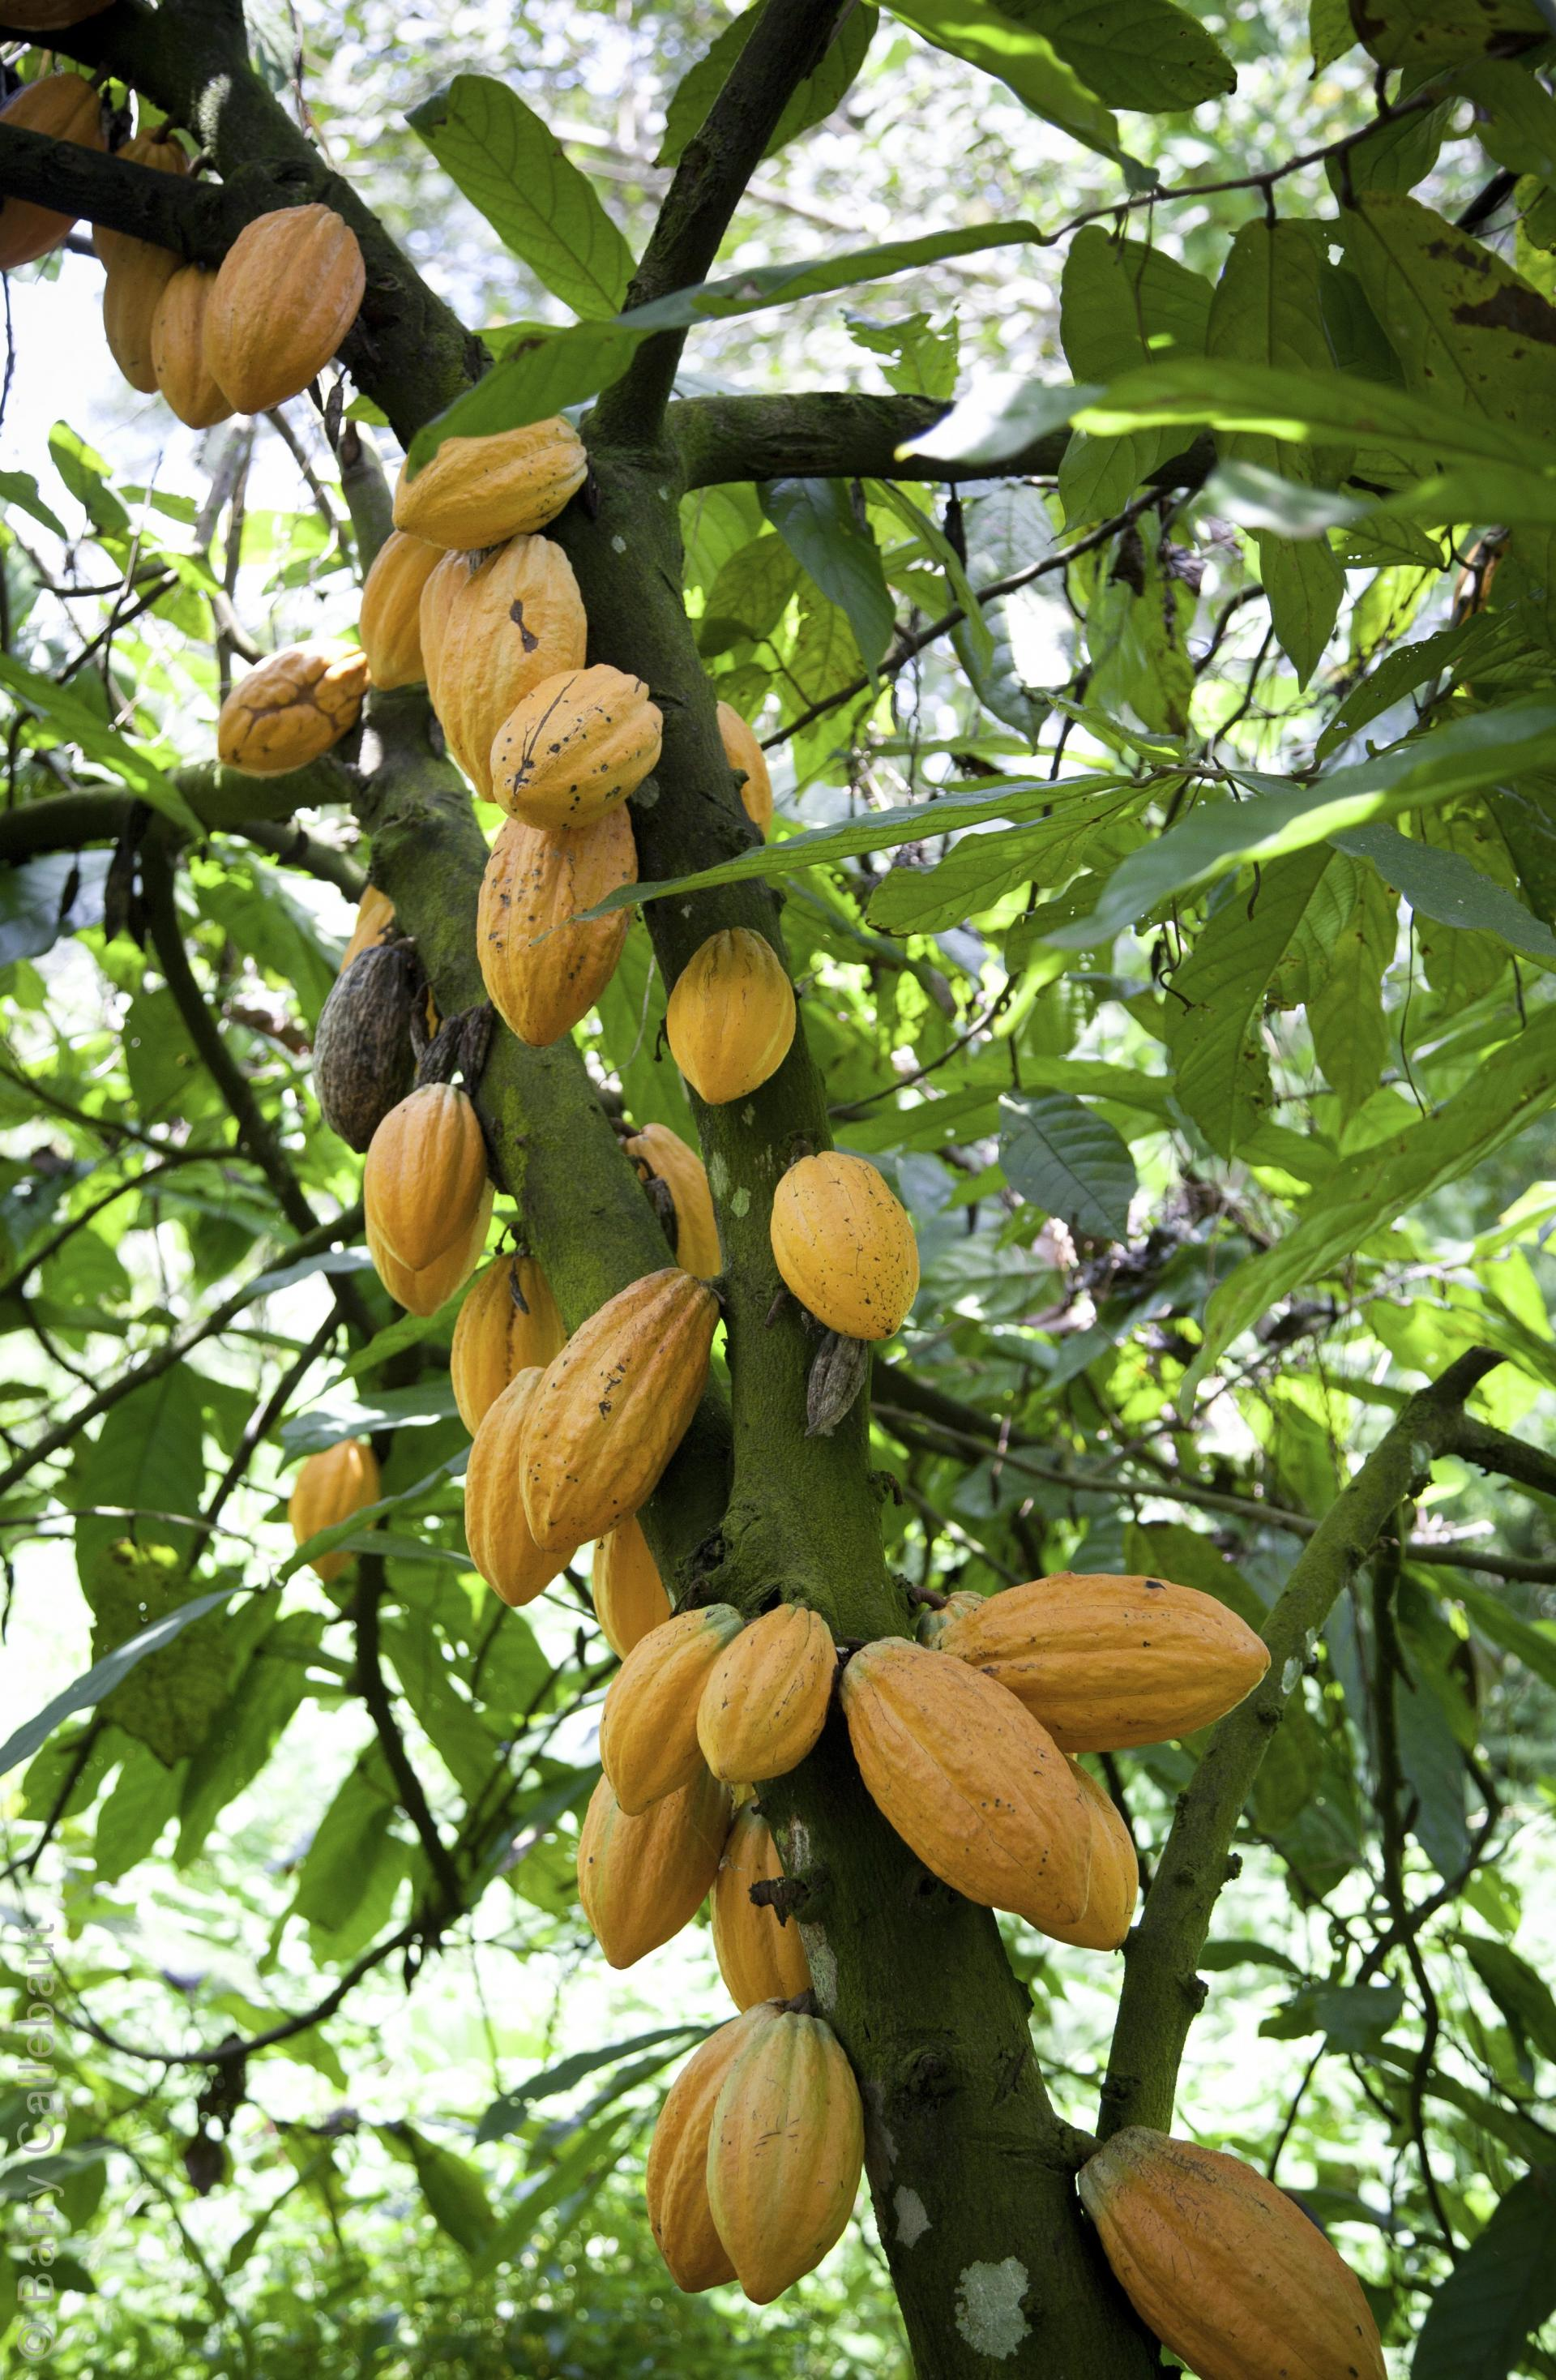 Barry Callebaut cocoa production